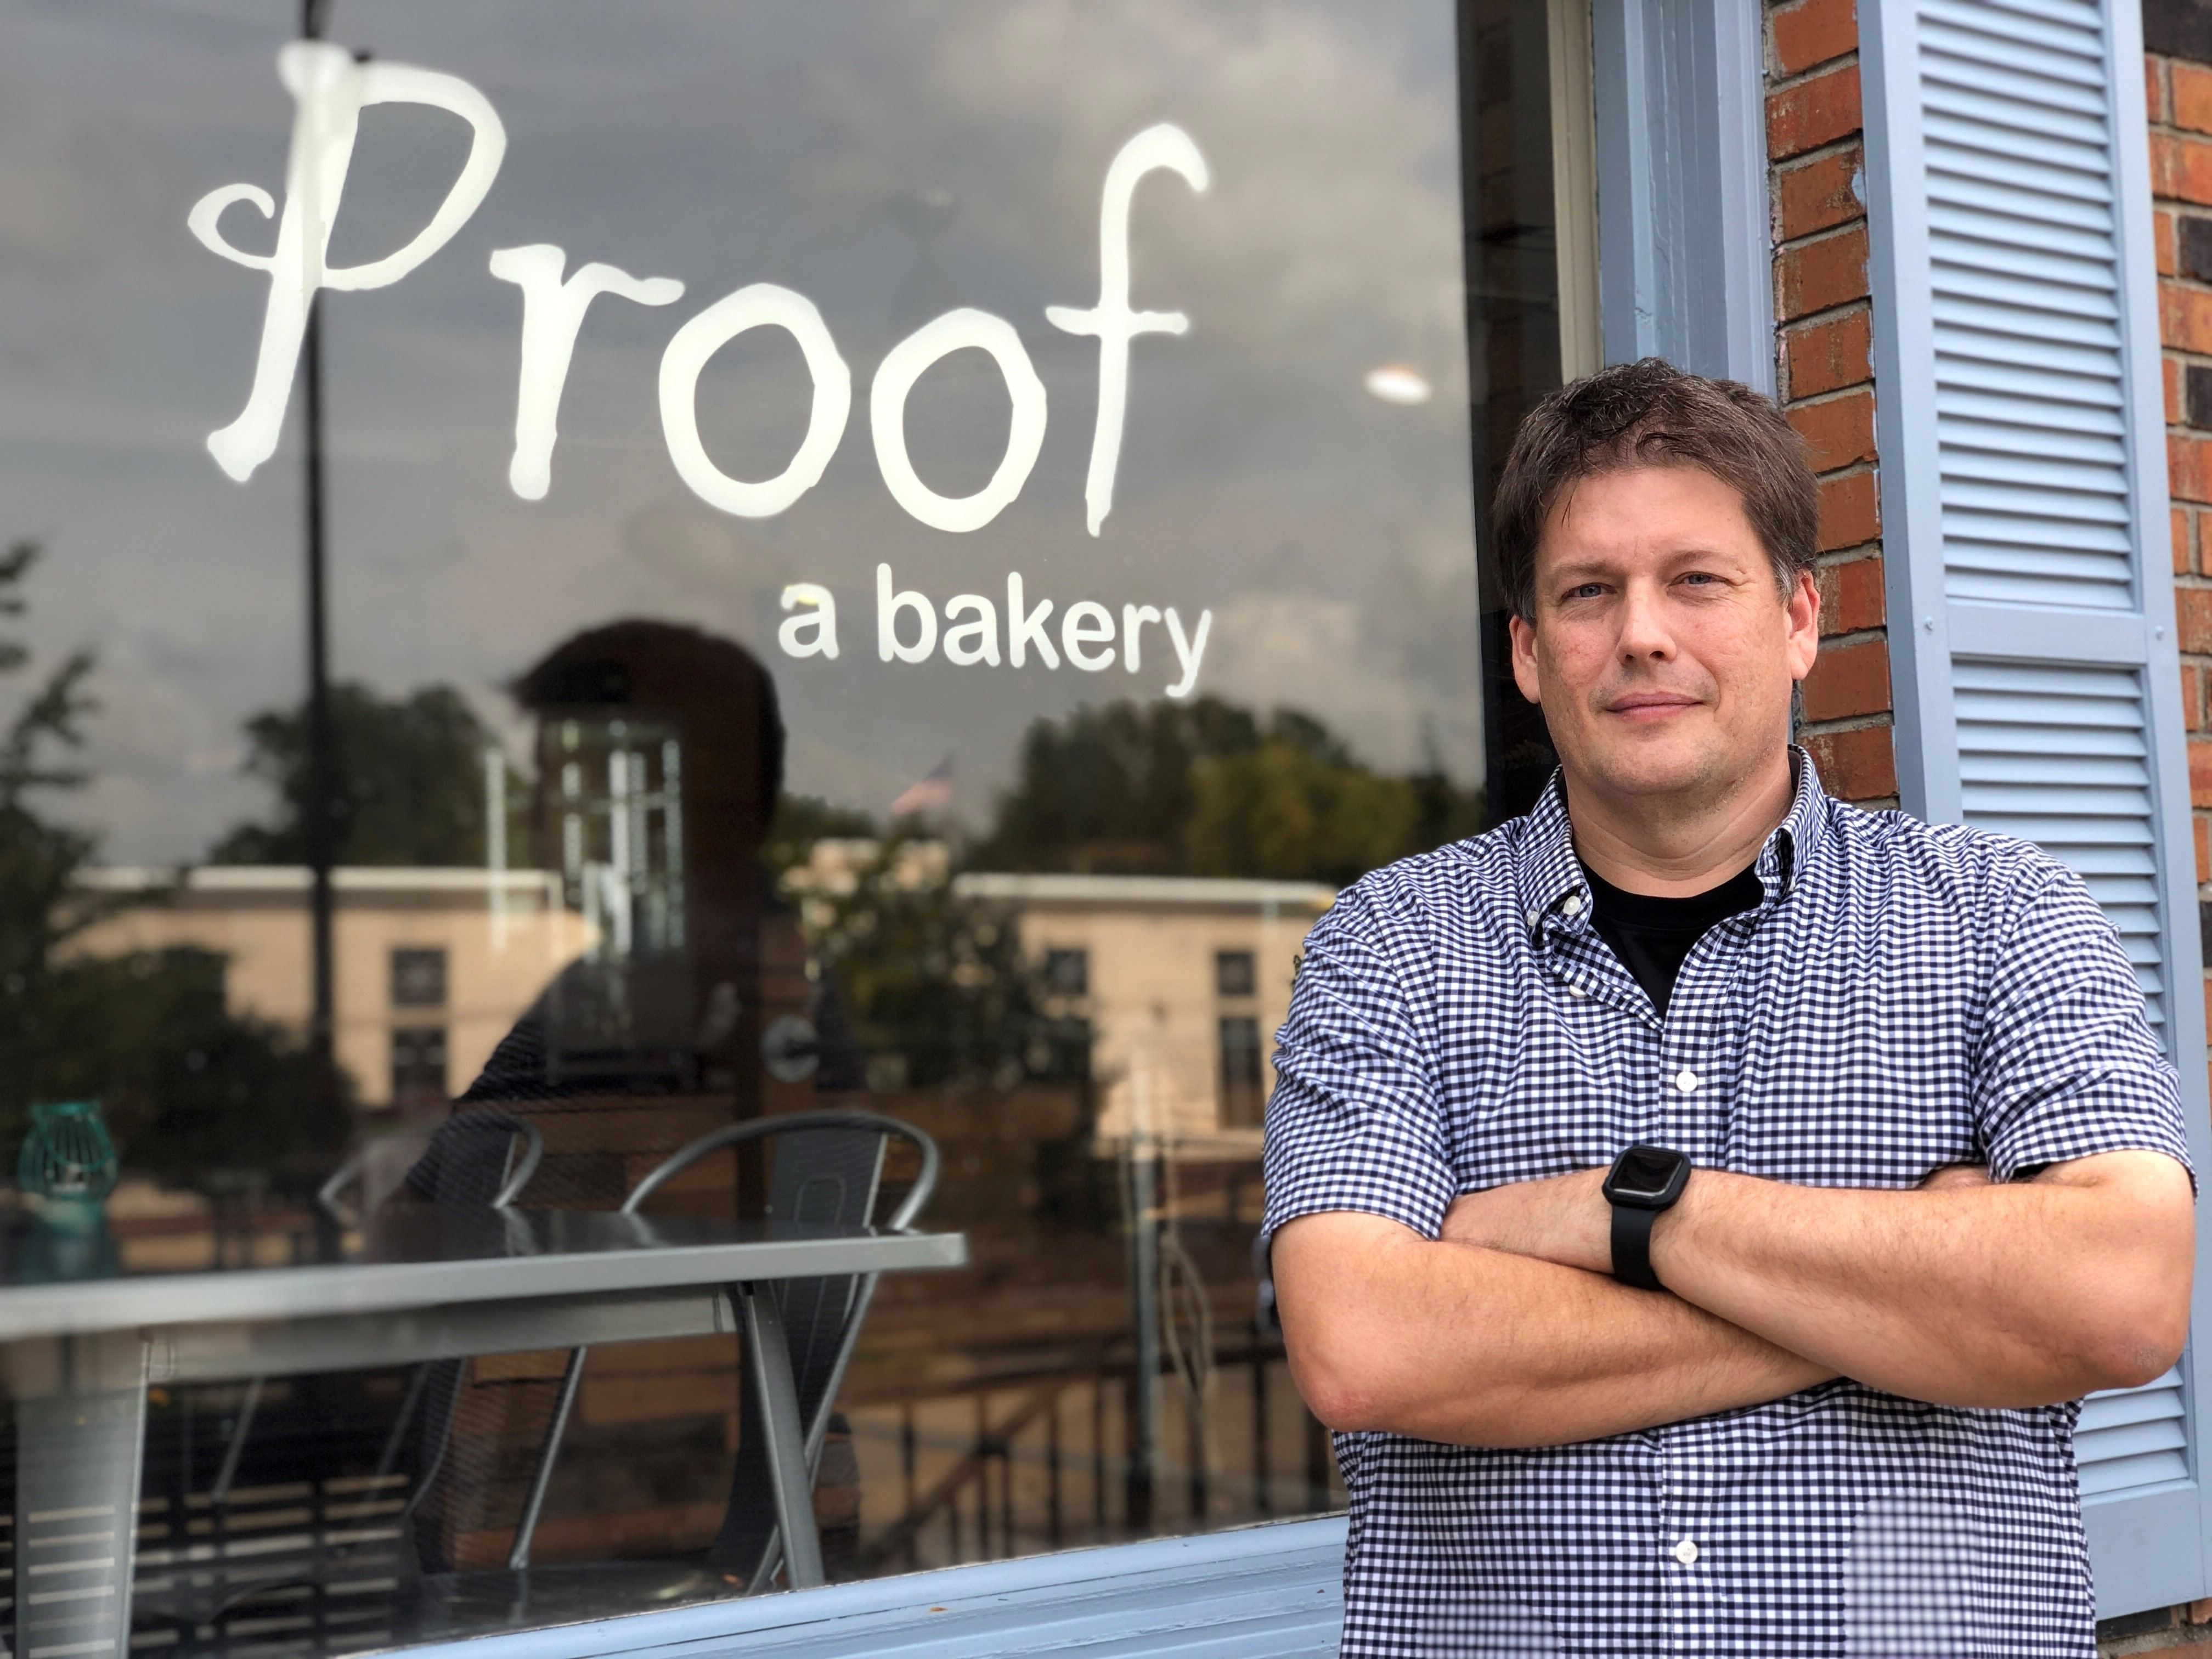 PPP Loan Brings Sweet Relief to Local Bakery